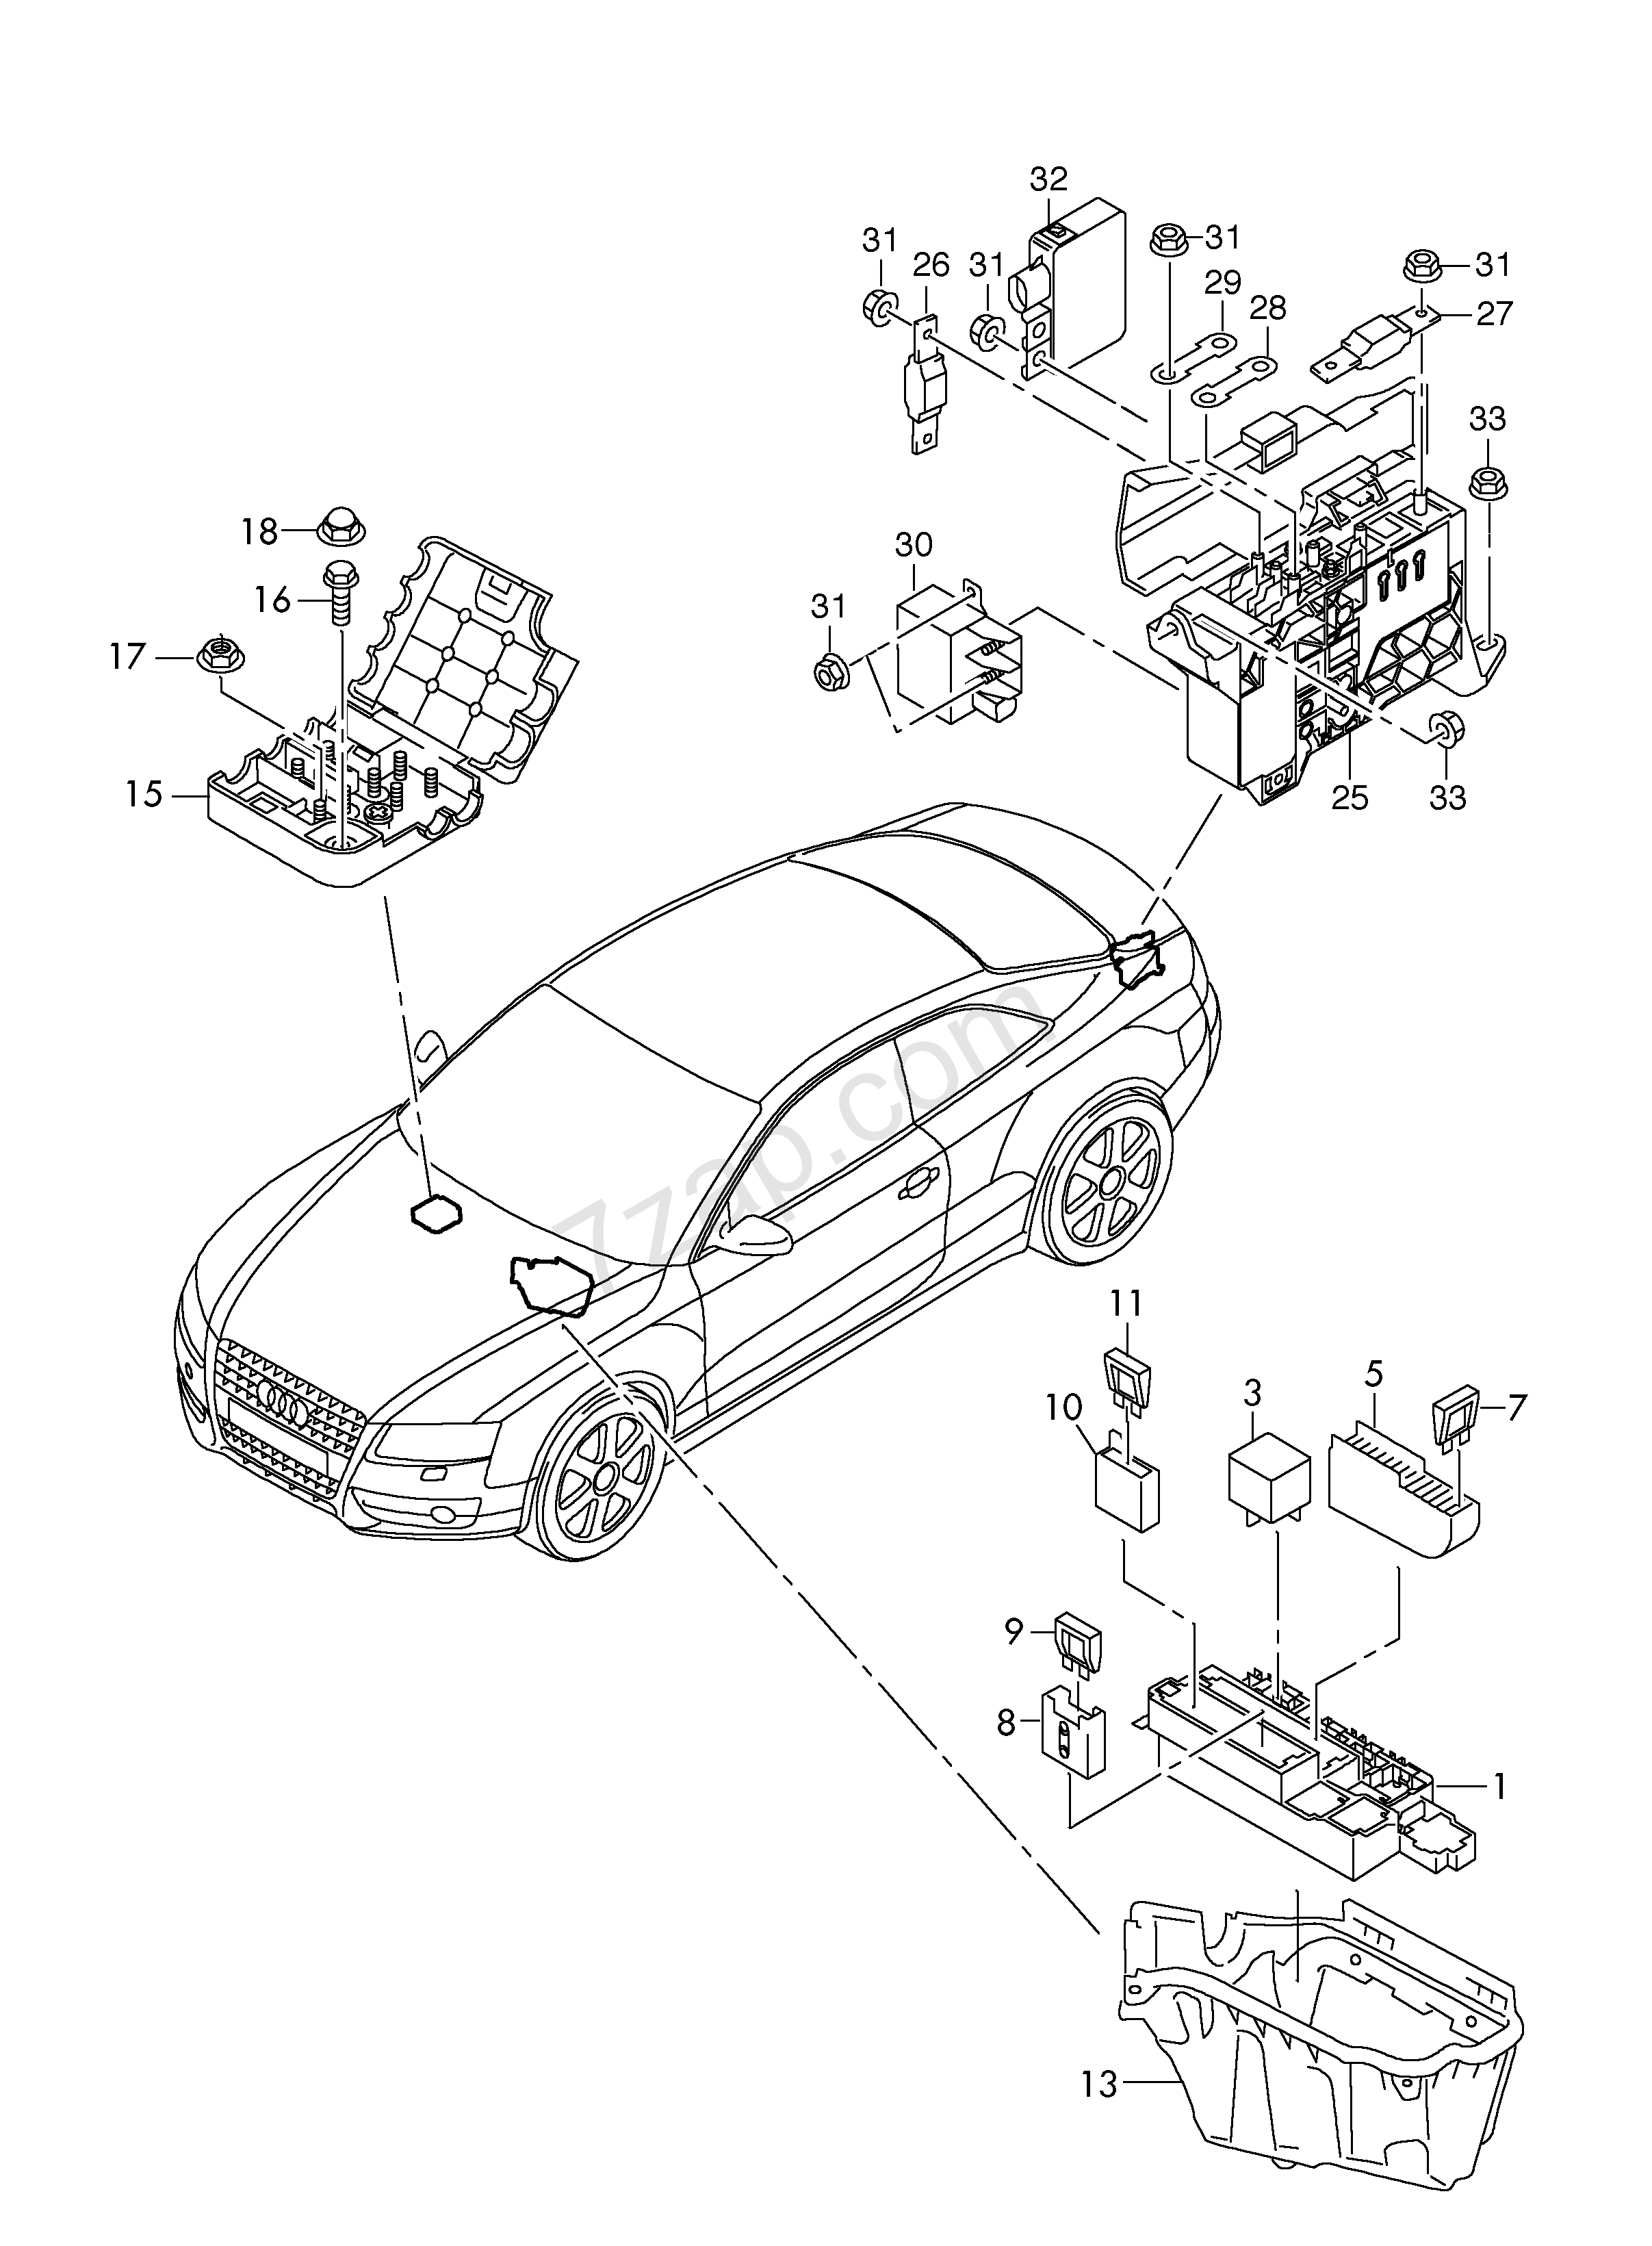 Ford Escape O2 Diagram in addition Wiring Diagram Audi A4 B6 furthermore  on audi a3 8l stereo wiring diagram